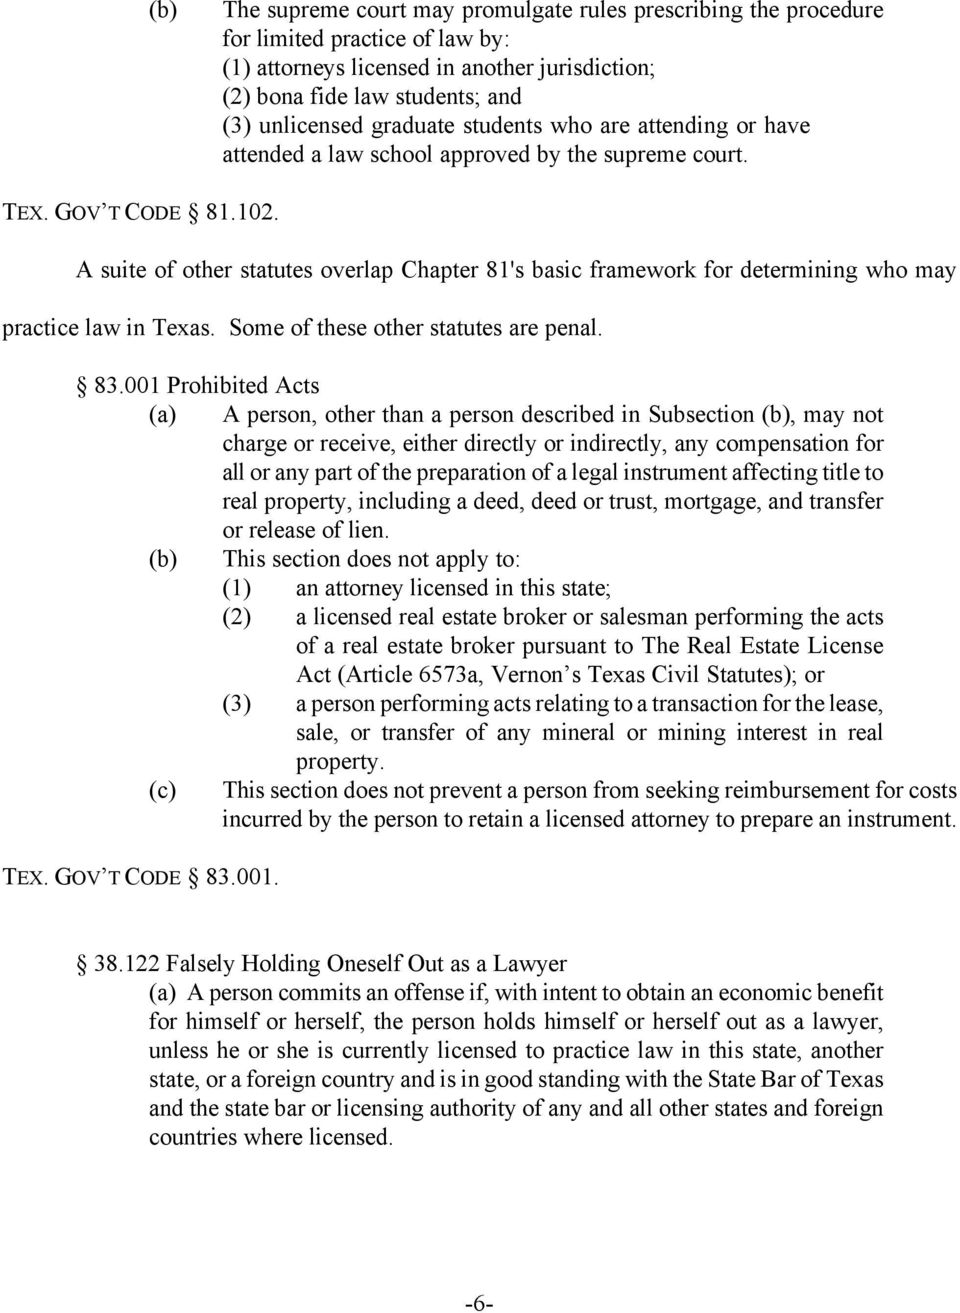 A suite of other statutes overlap Chapter 81's basic framework for determining who may practice law in Texas. Some of these other statutes are penal. 83.